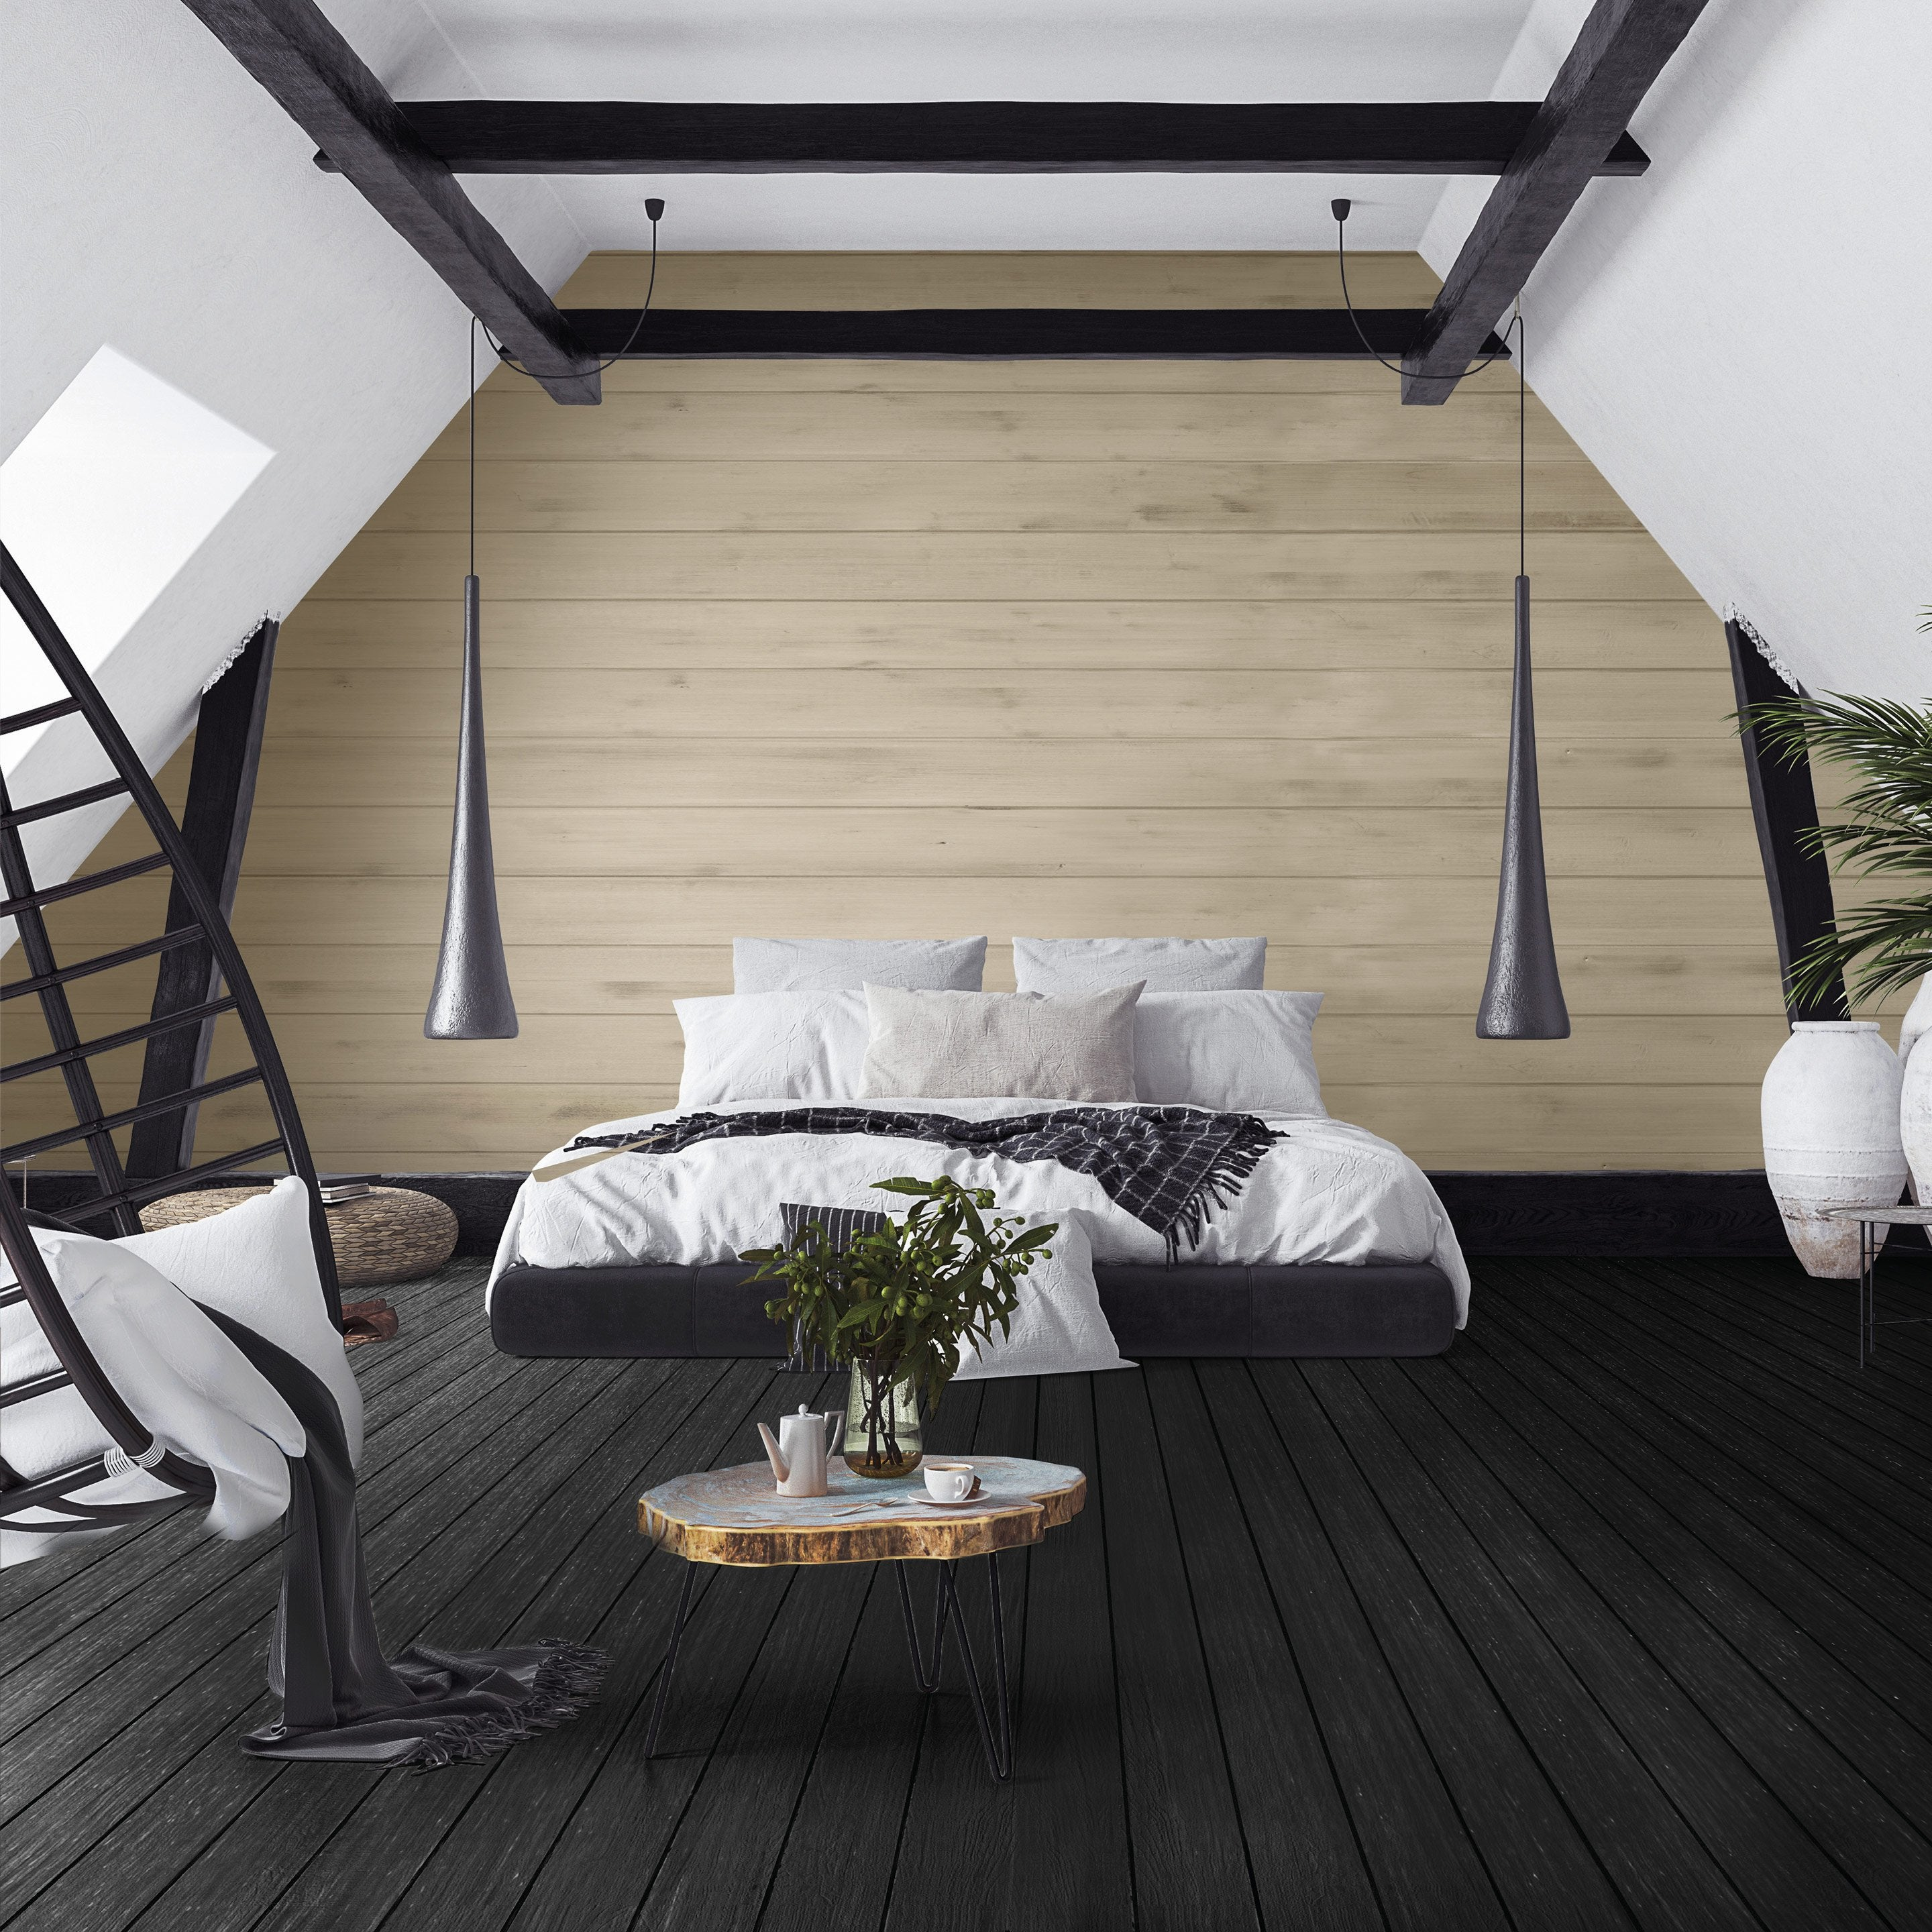 peinture sol int rieur relook bois maison deco noir 1 l. Black Bedroom Furniture Sets. Home Design Ideas